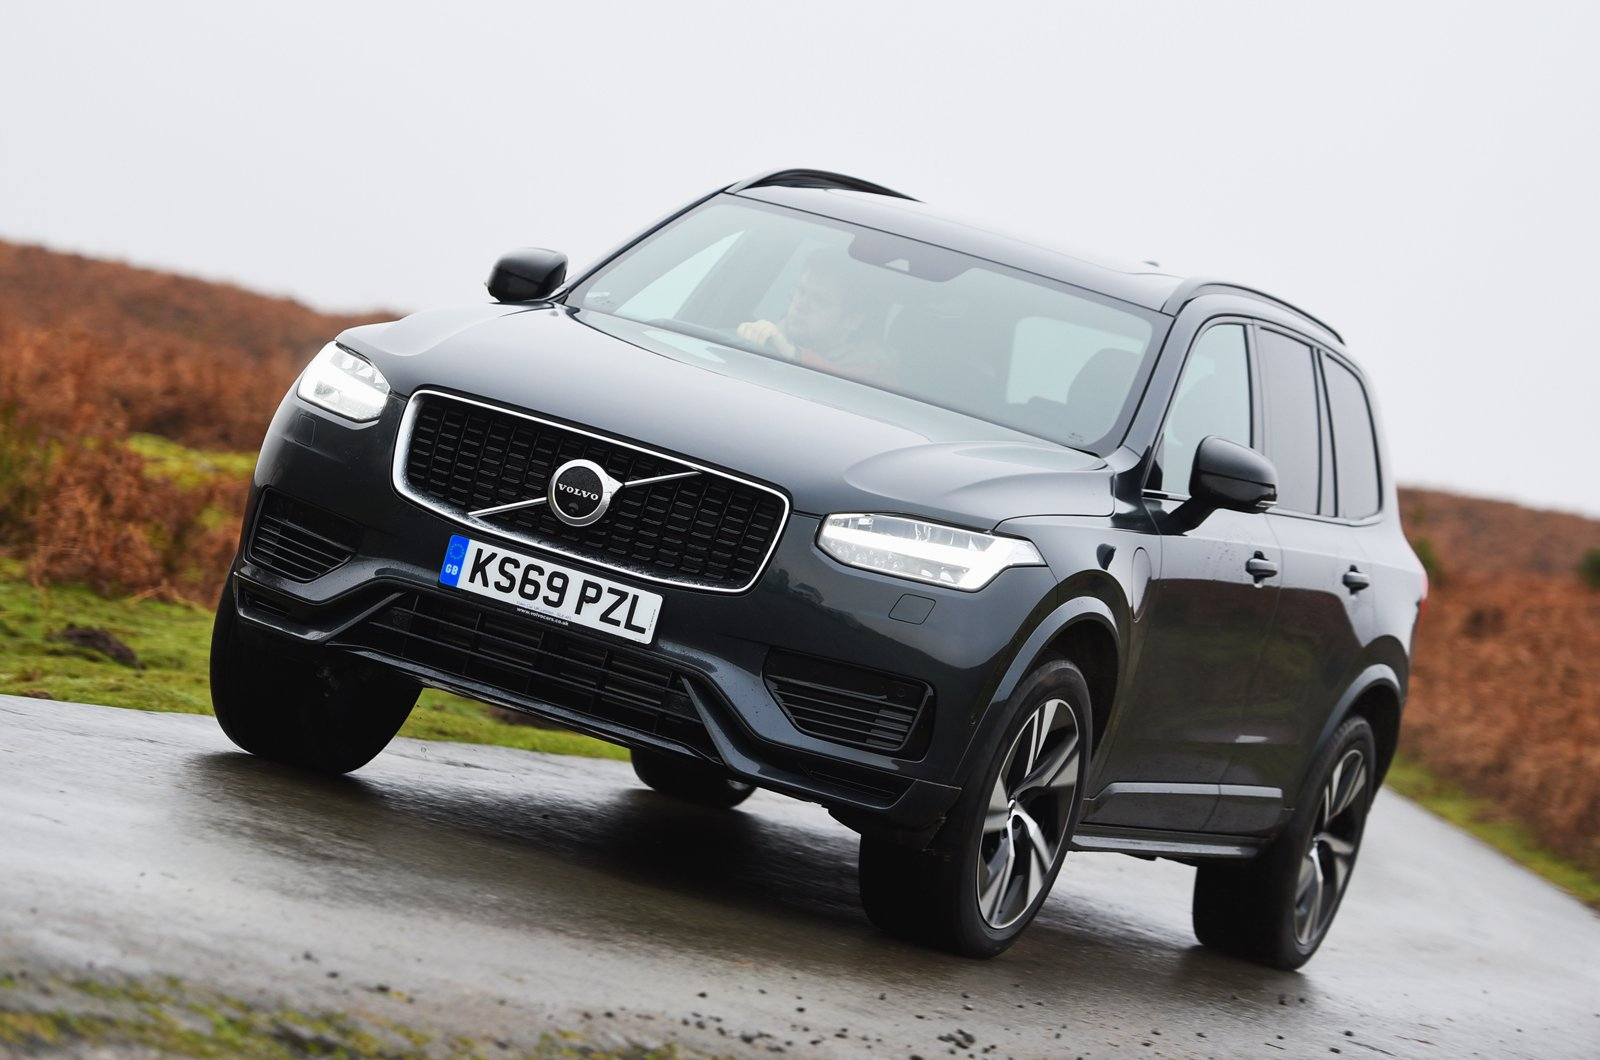 Volvo XC90 T8 front cornering - 69-plate car